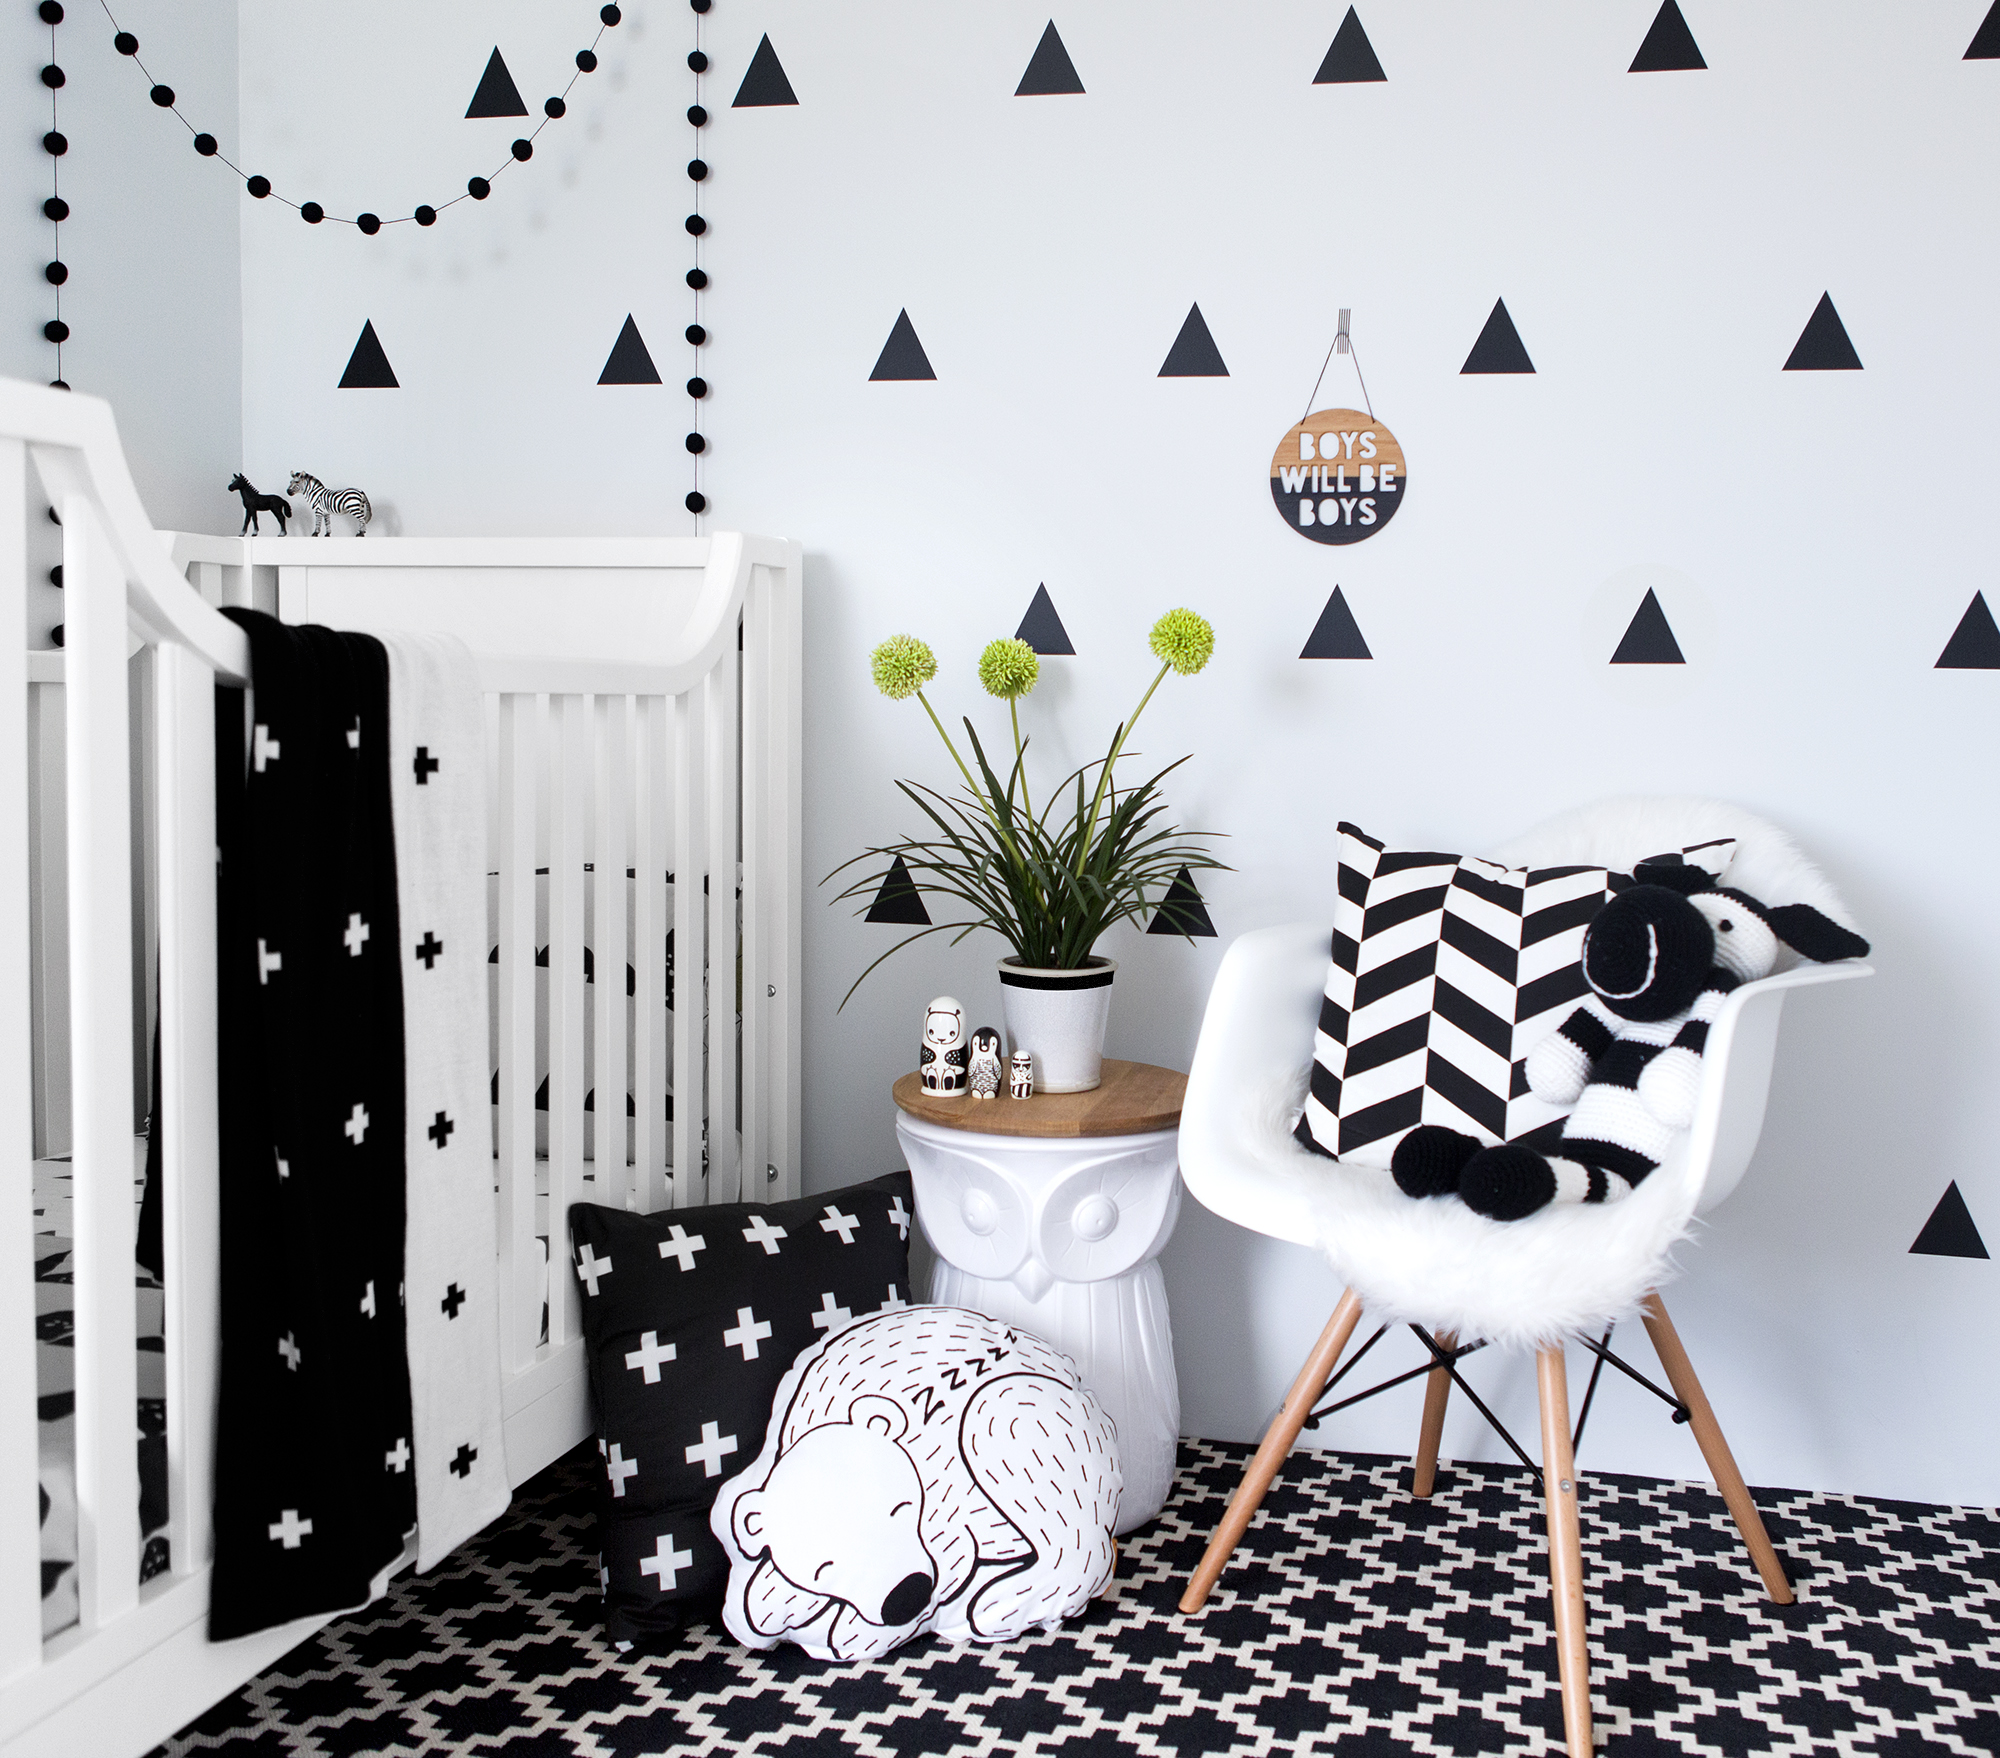 Australian nursery ideas with Vivid Wall Decals The Interiors Addict